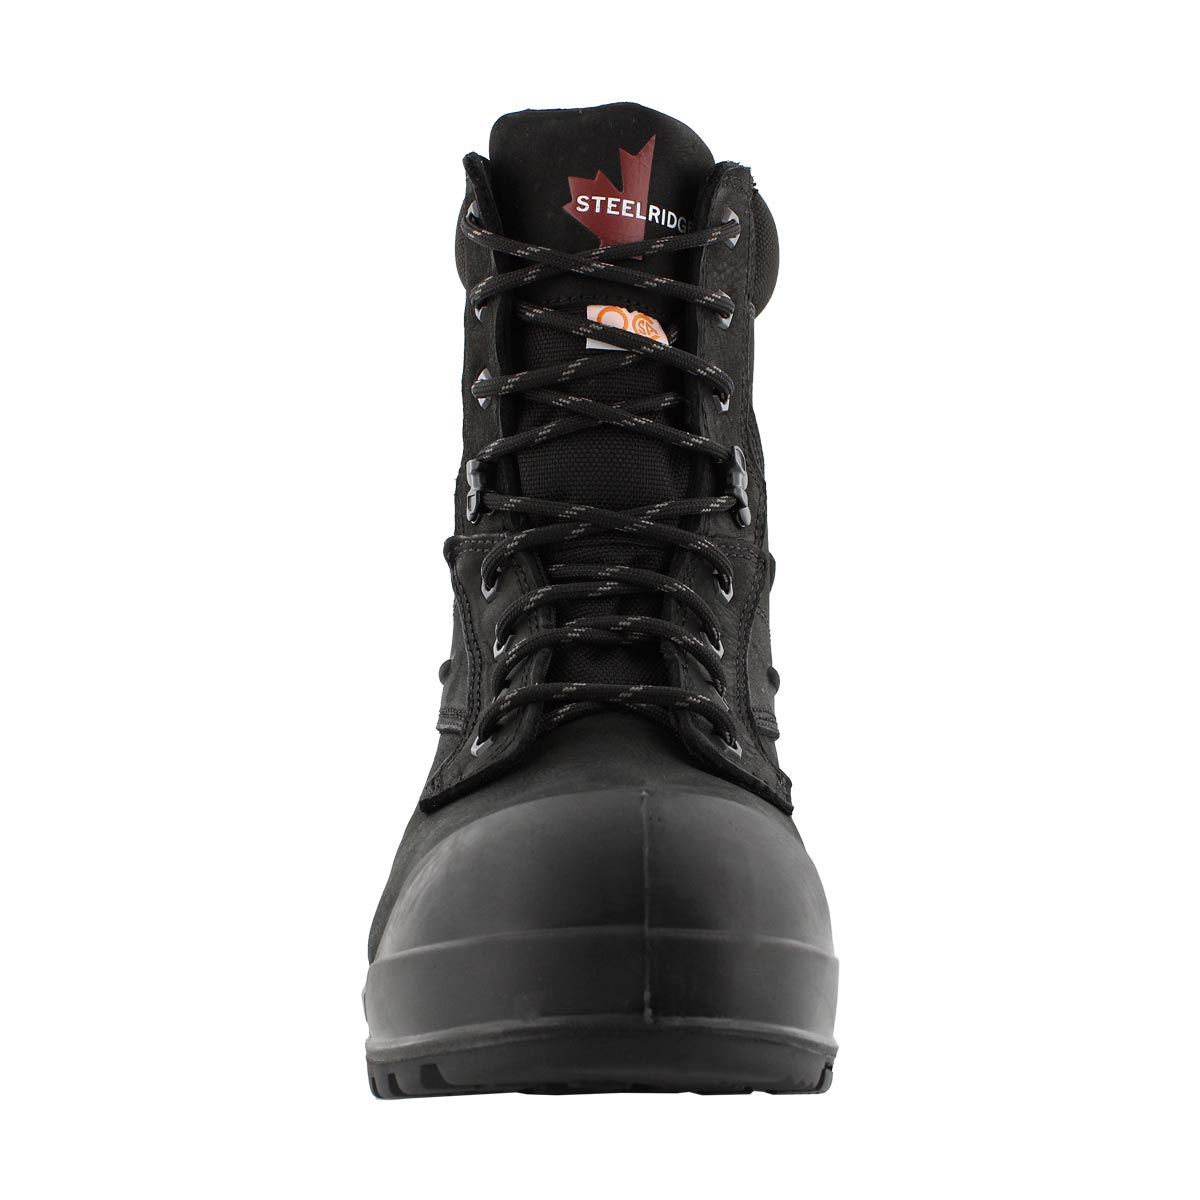 Mns Caliber black lace up 8